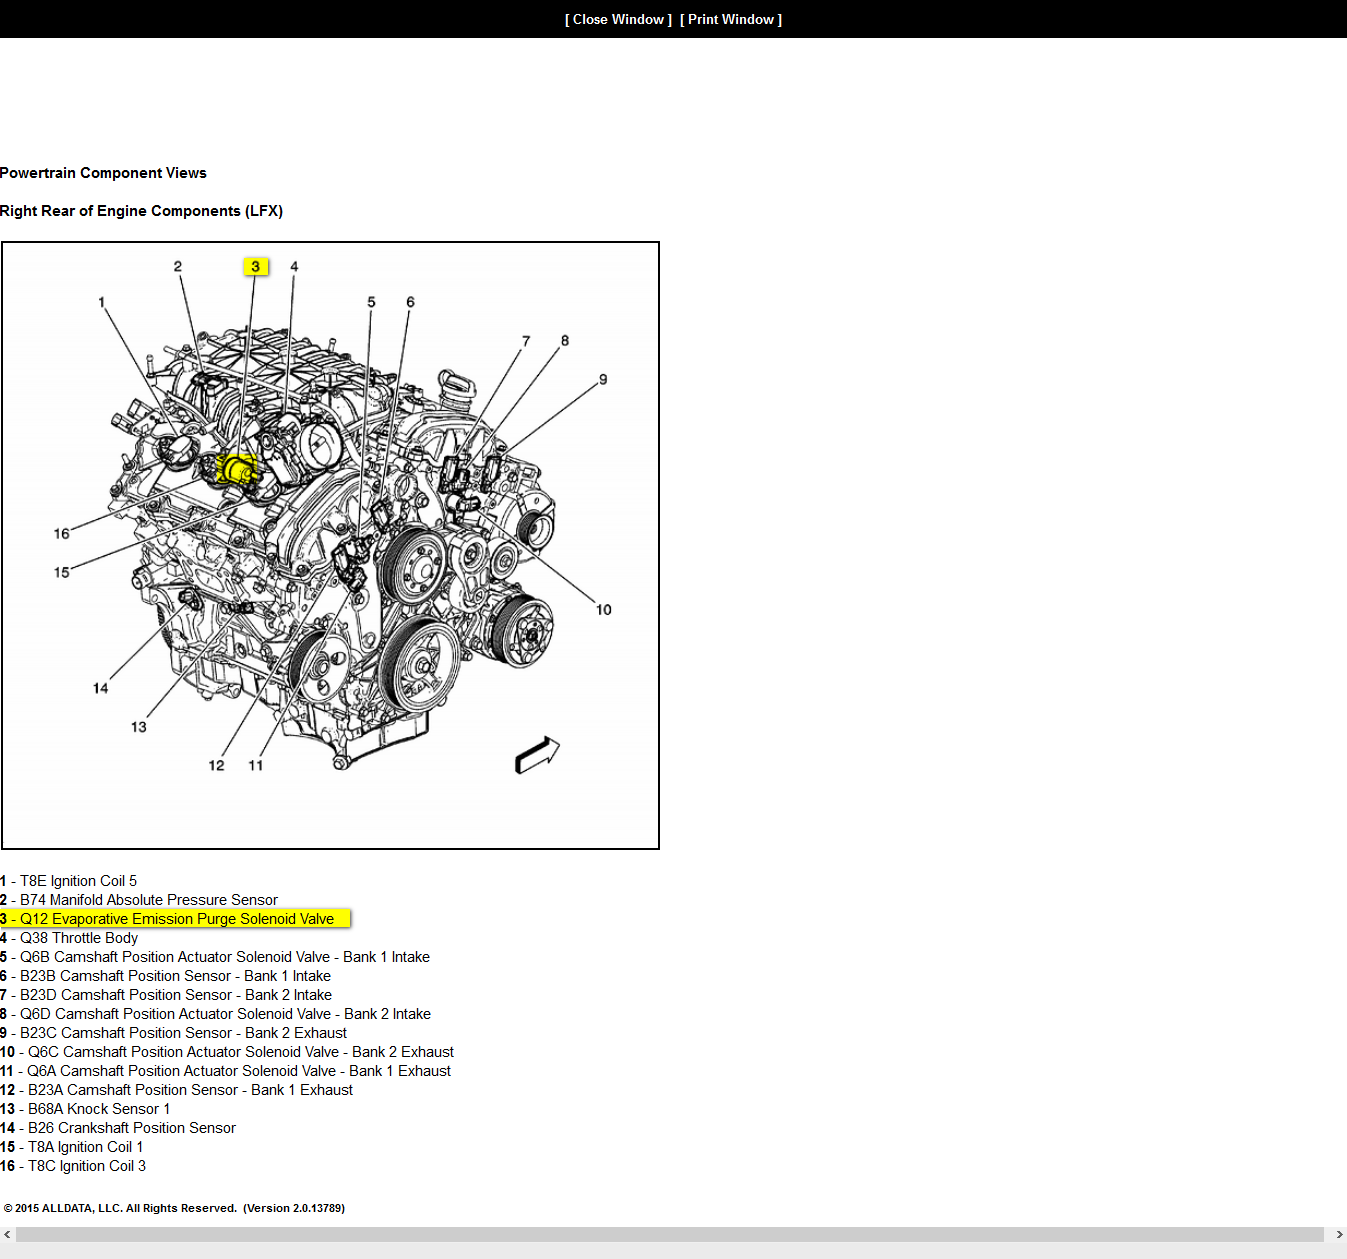 2012 buick regal wiring diagrams 2012 buick verano engine diagram | wiring library